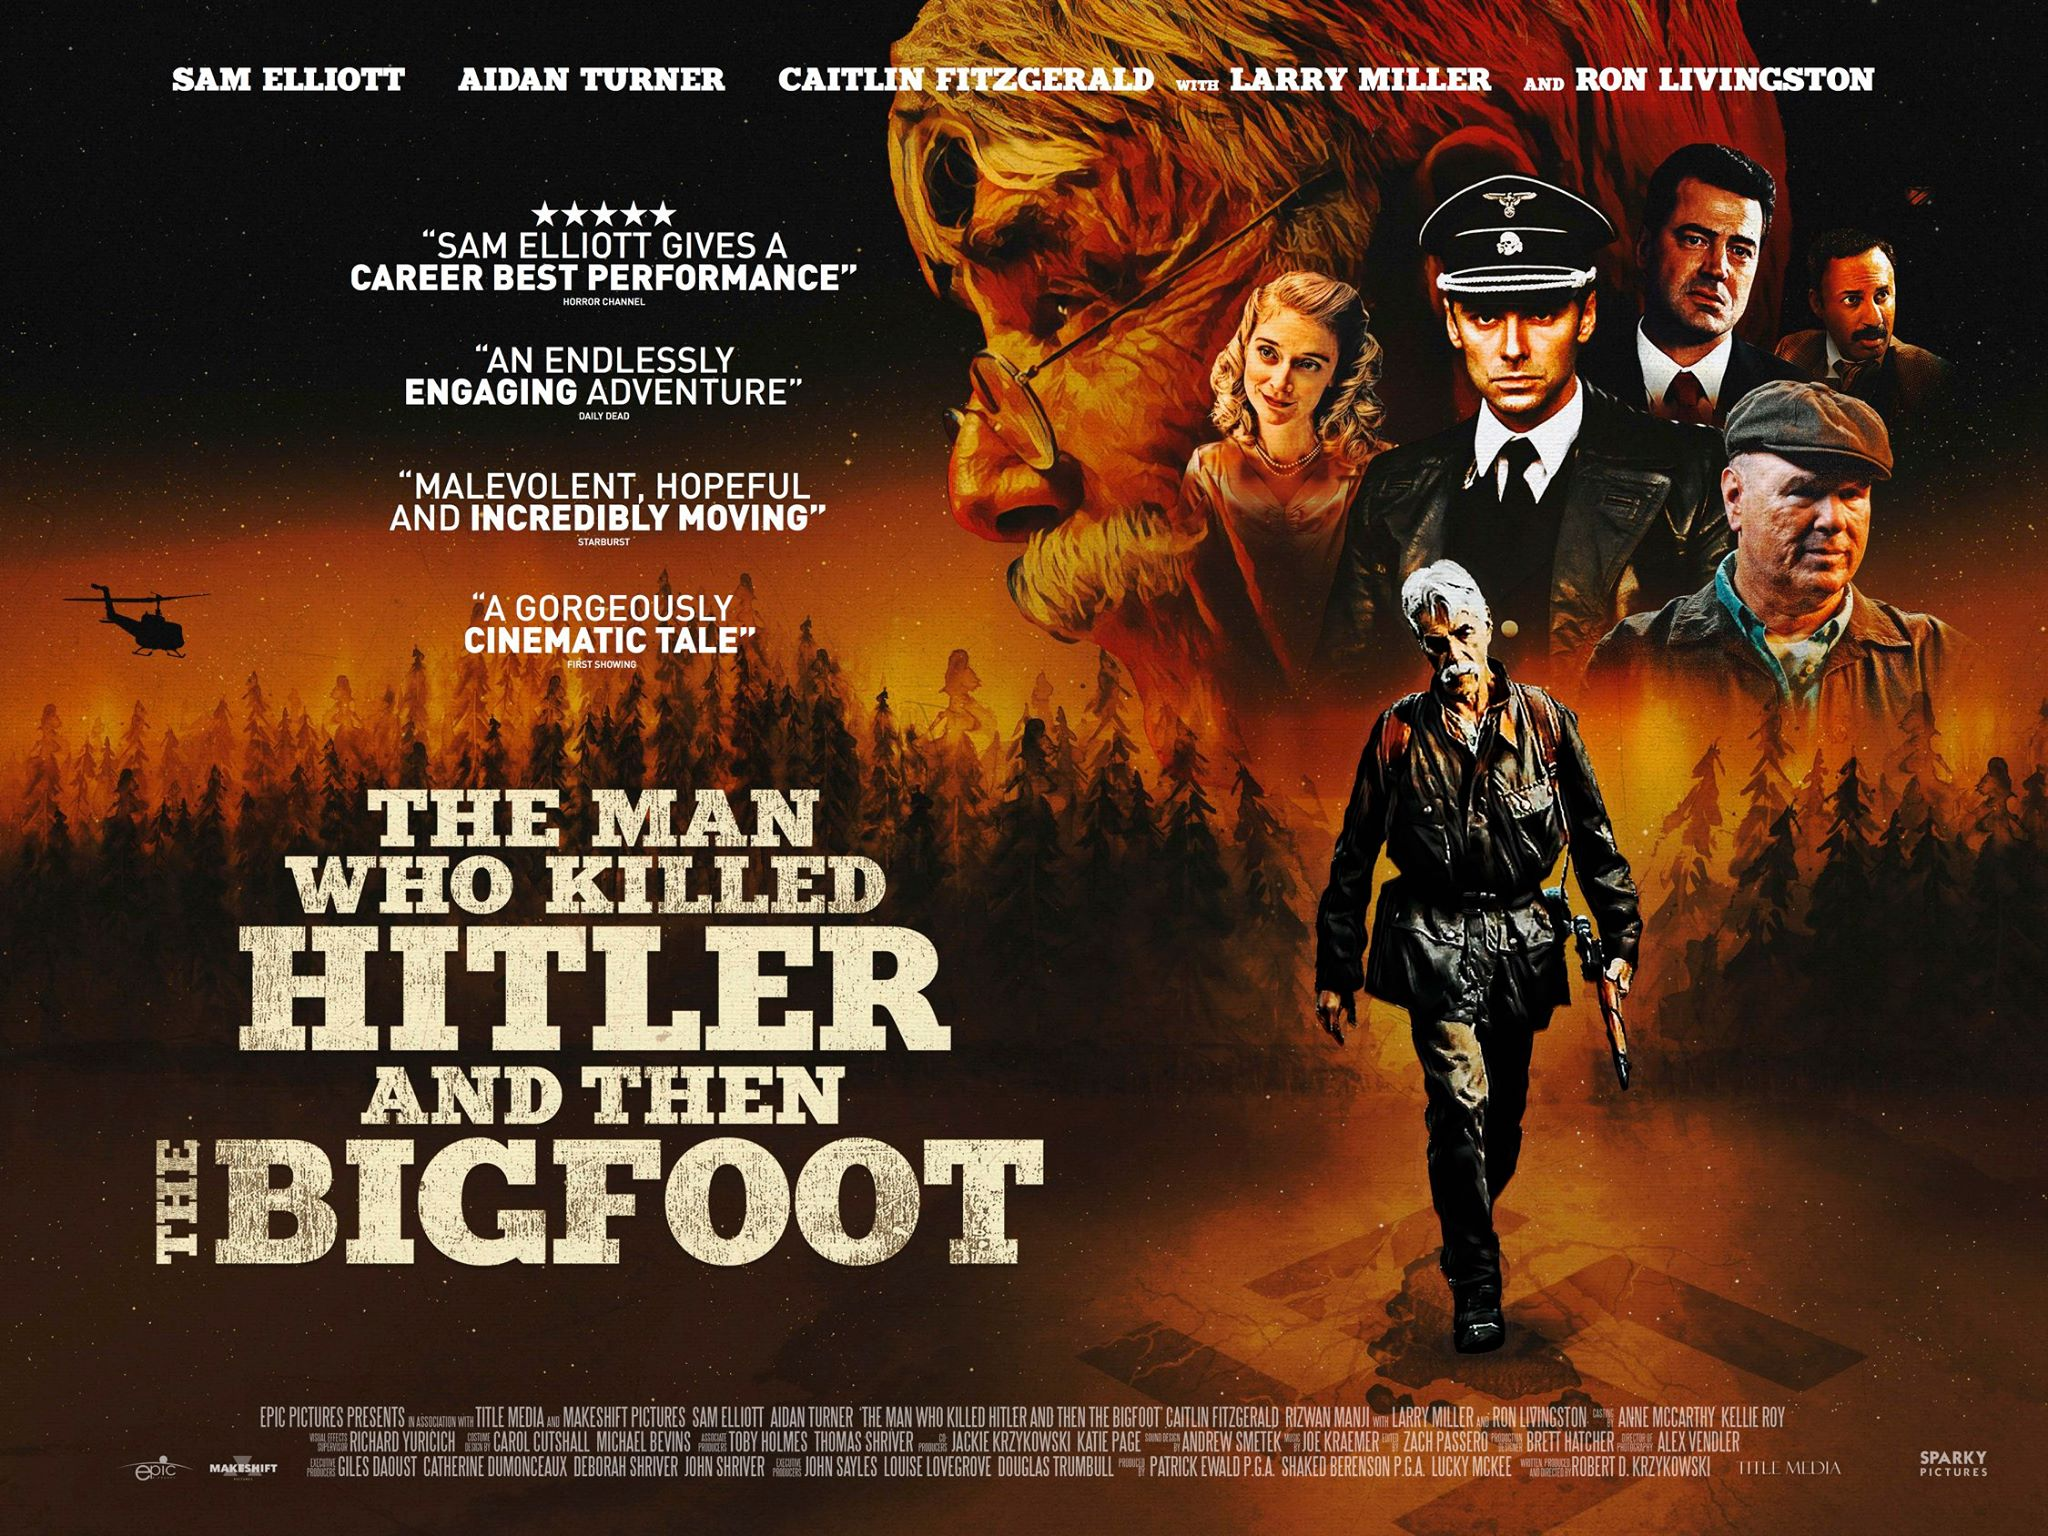 The Man Who Killed Hitler And Then The Bigfoot (2018) - A Review